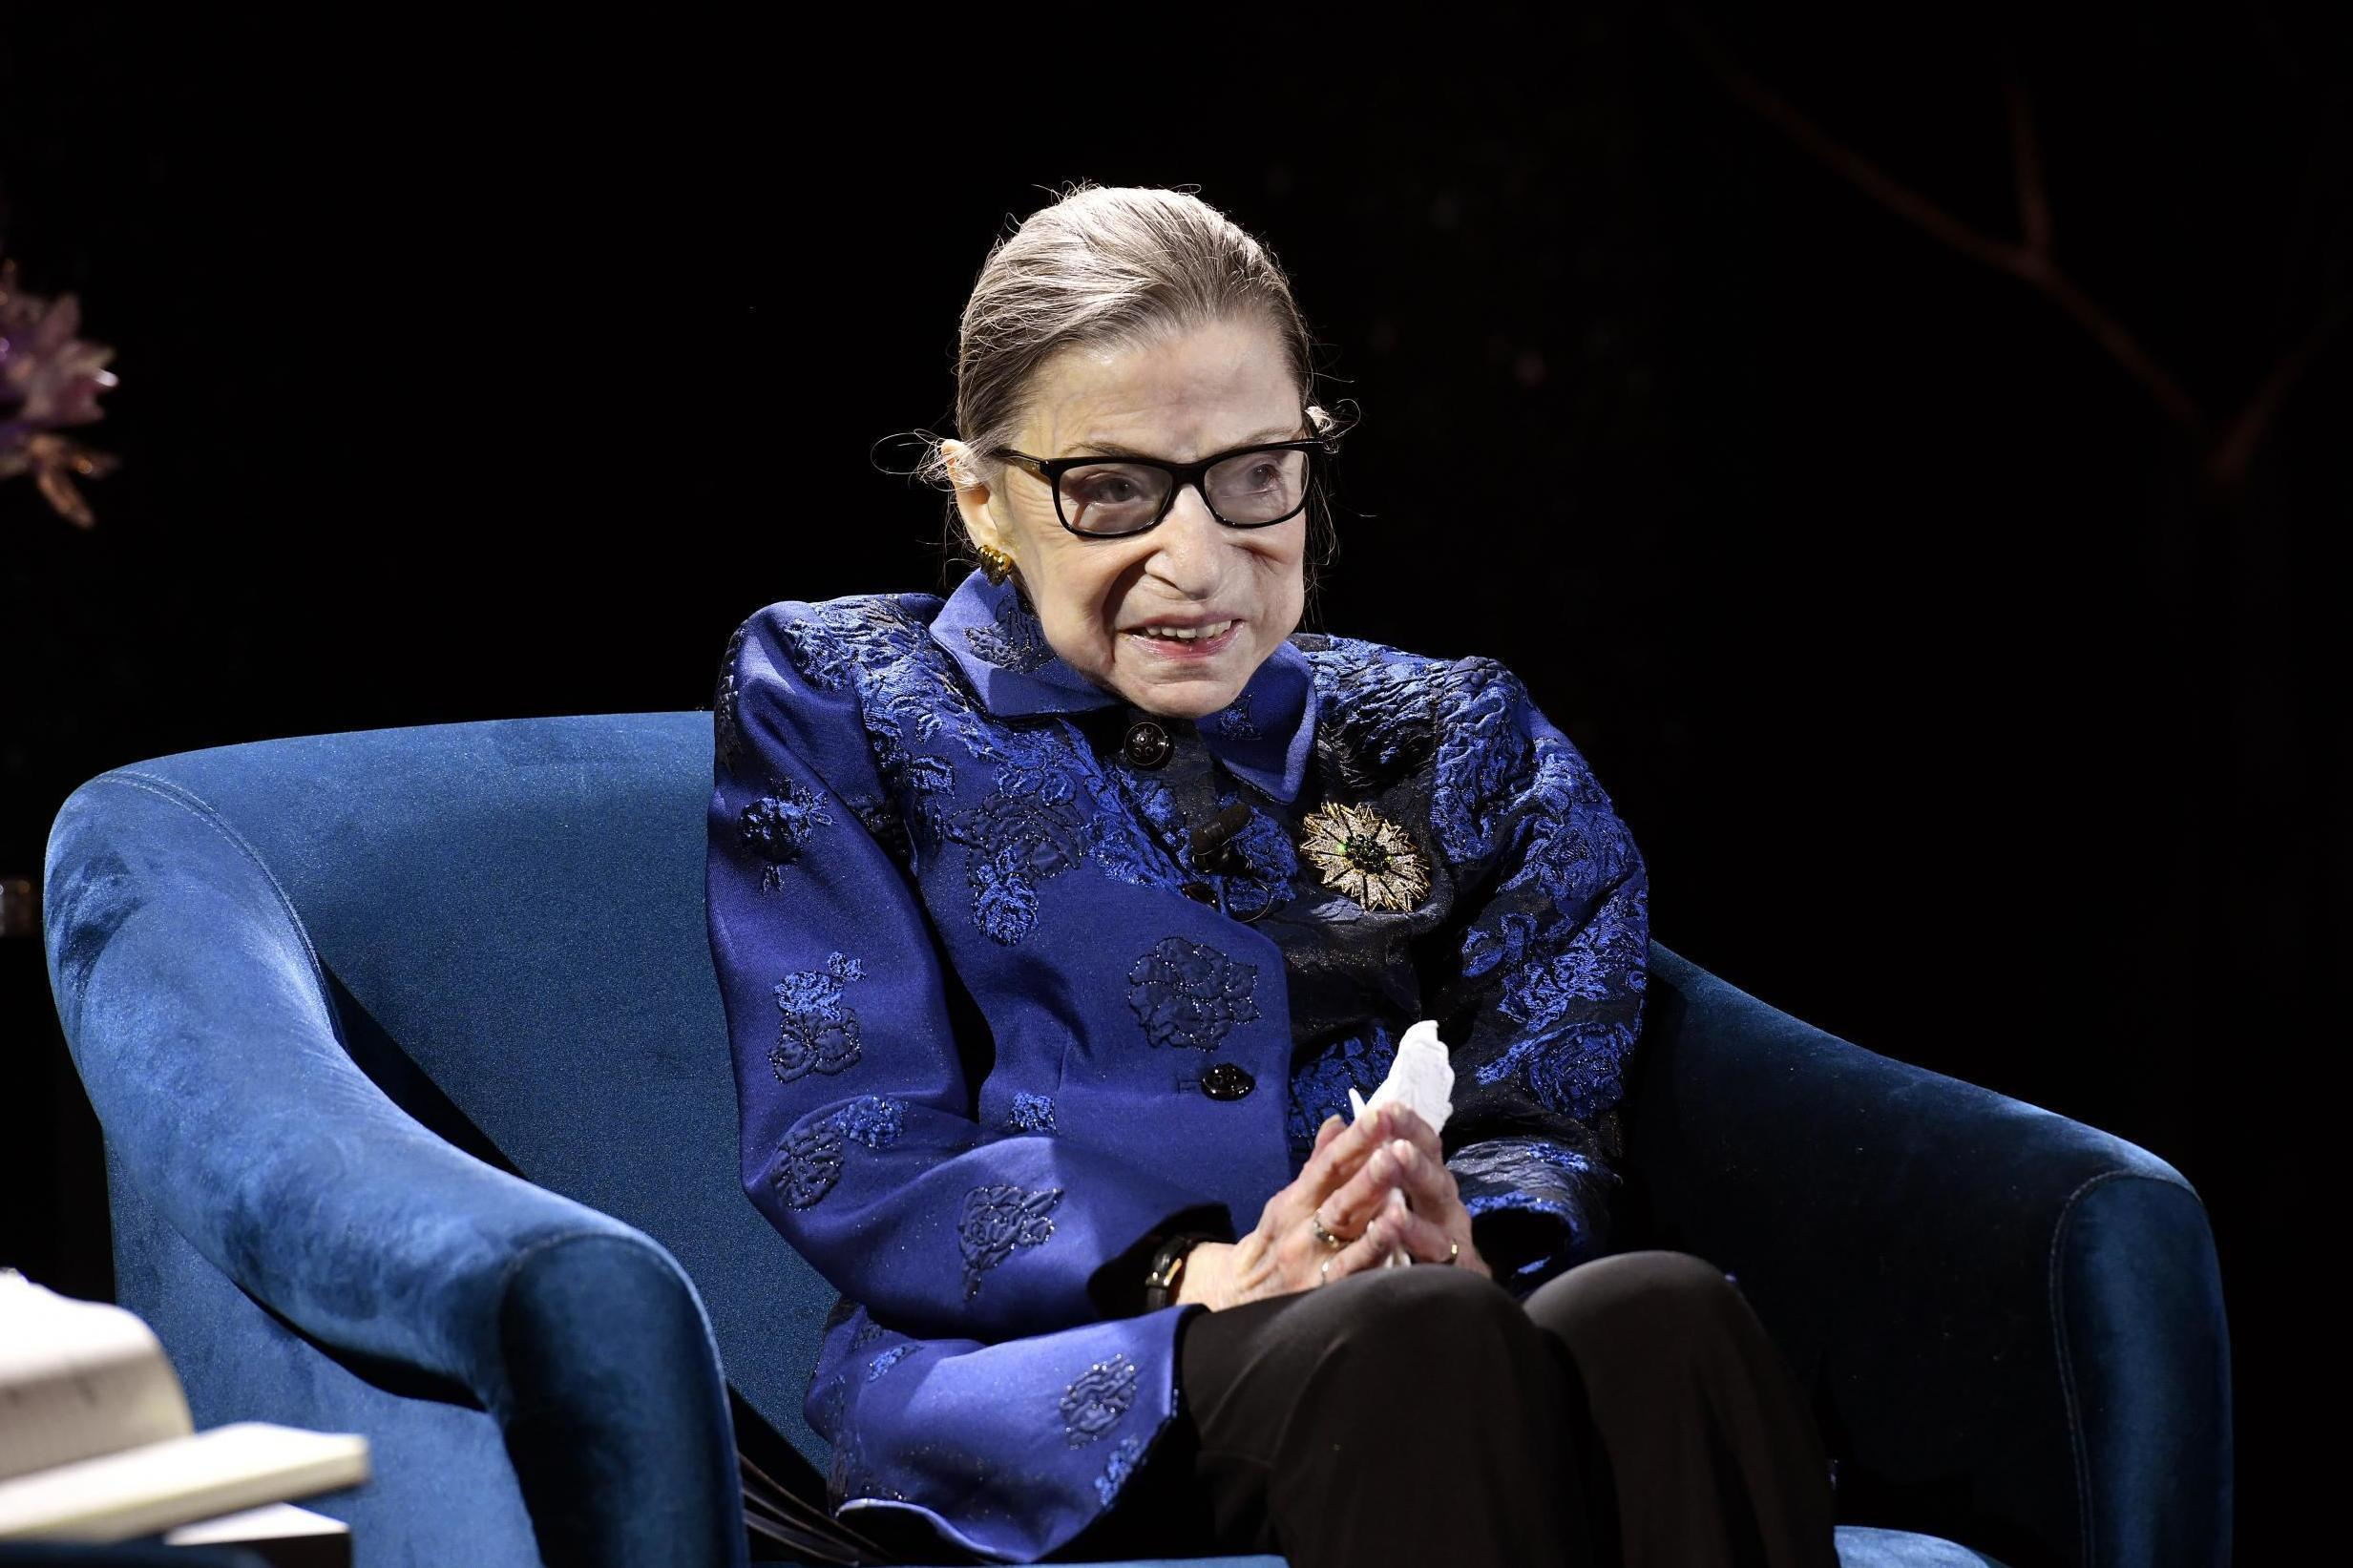 Ruth Bader Ginsburg praised for wearing sparkly high heels to presen…